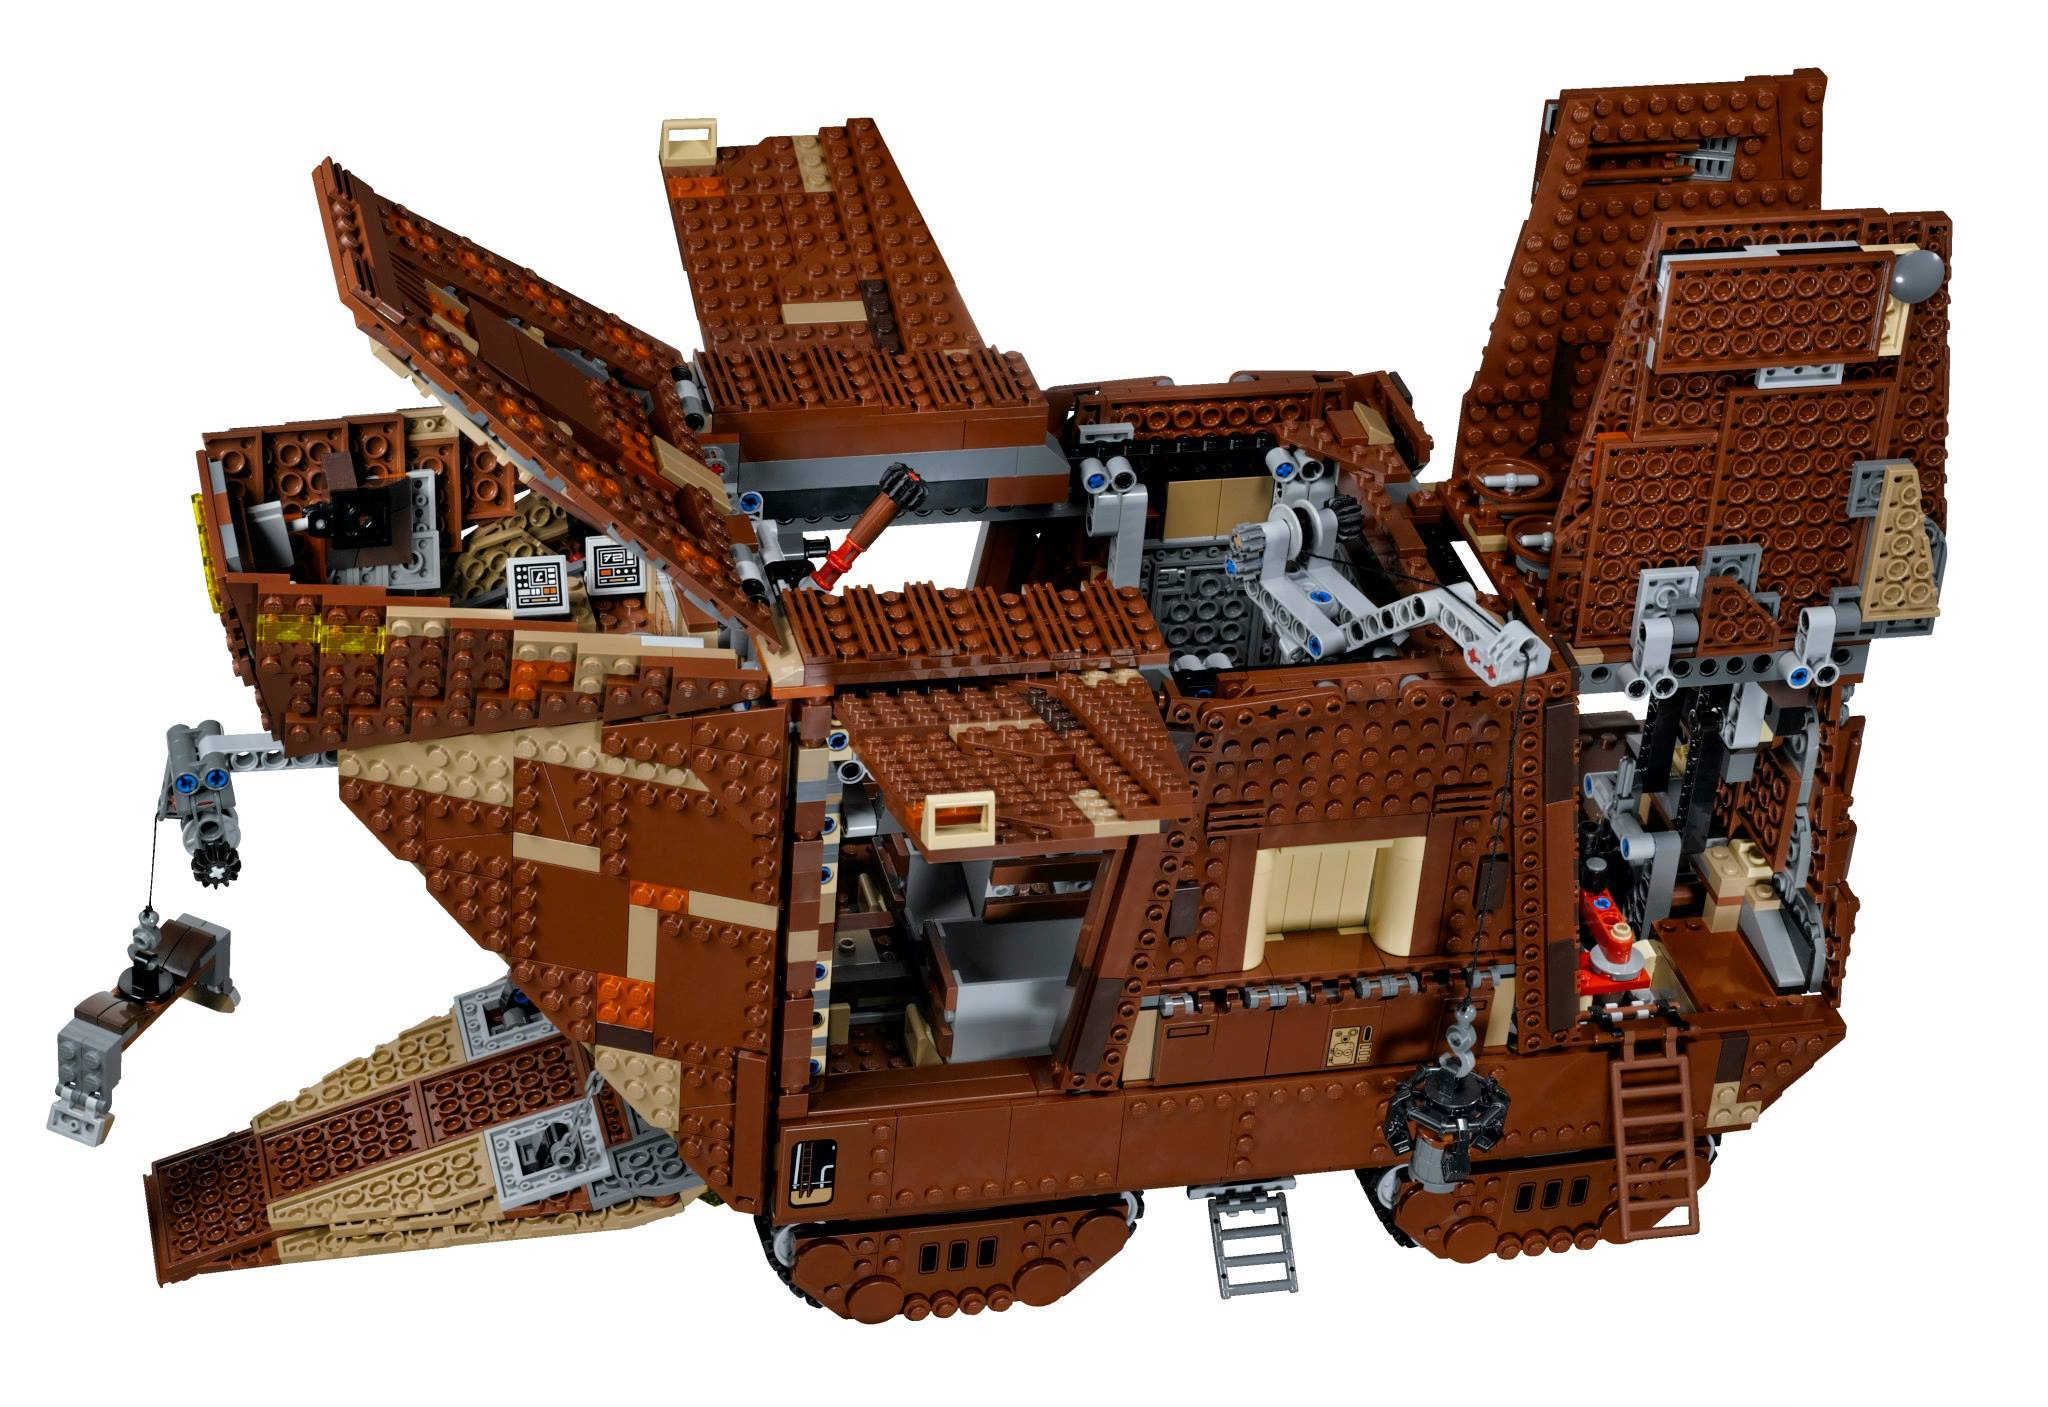 Lego to release star wars sandcrawler in may 2014 - Image star wars lego ...